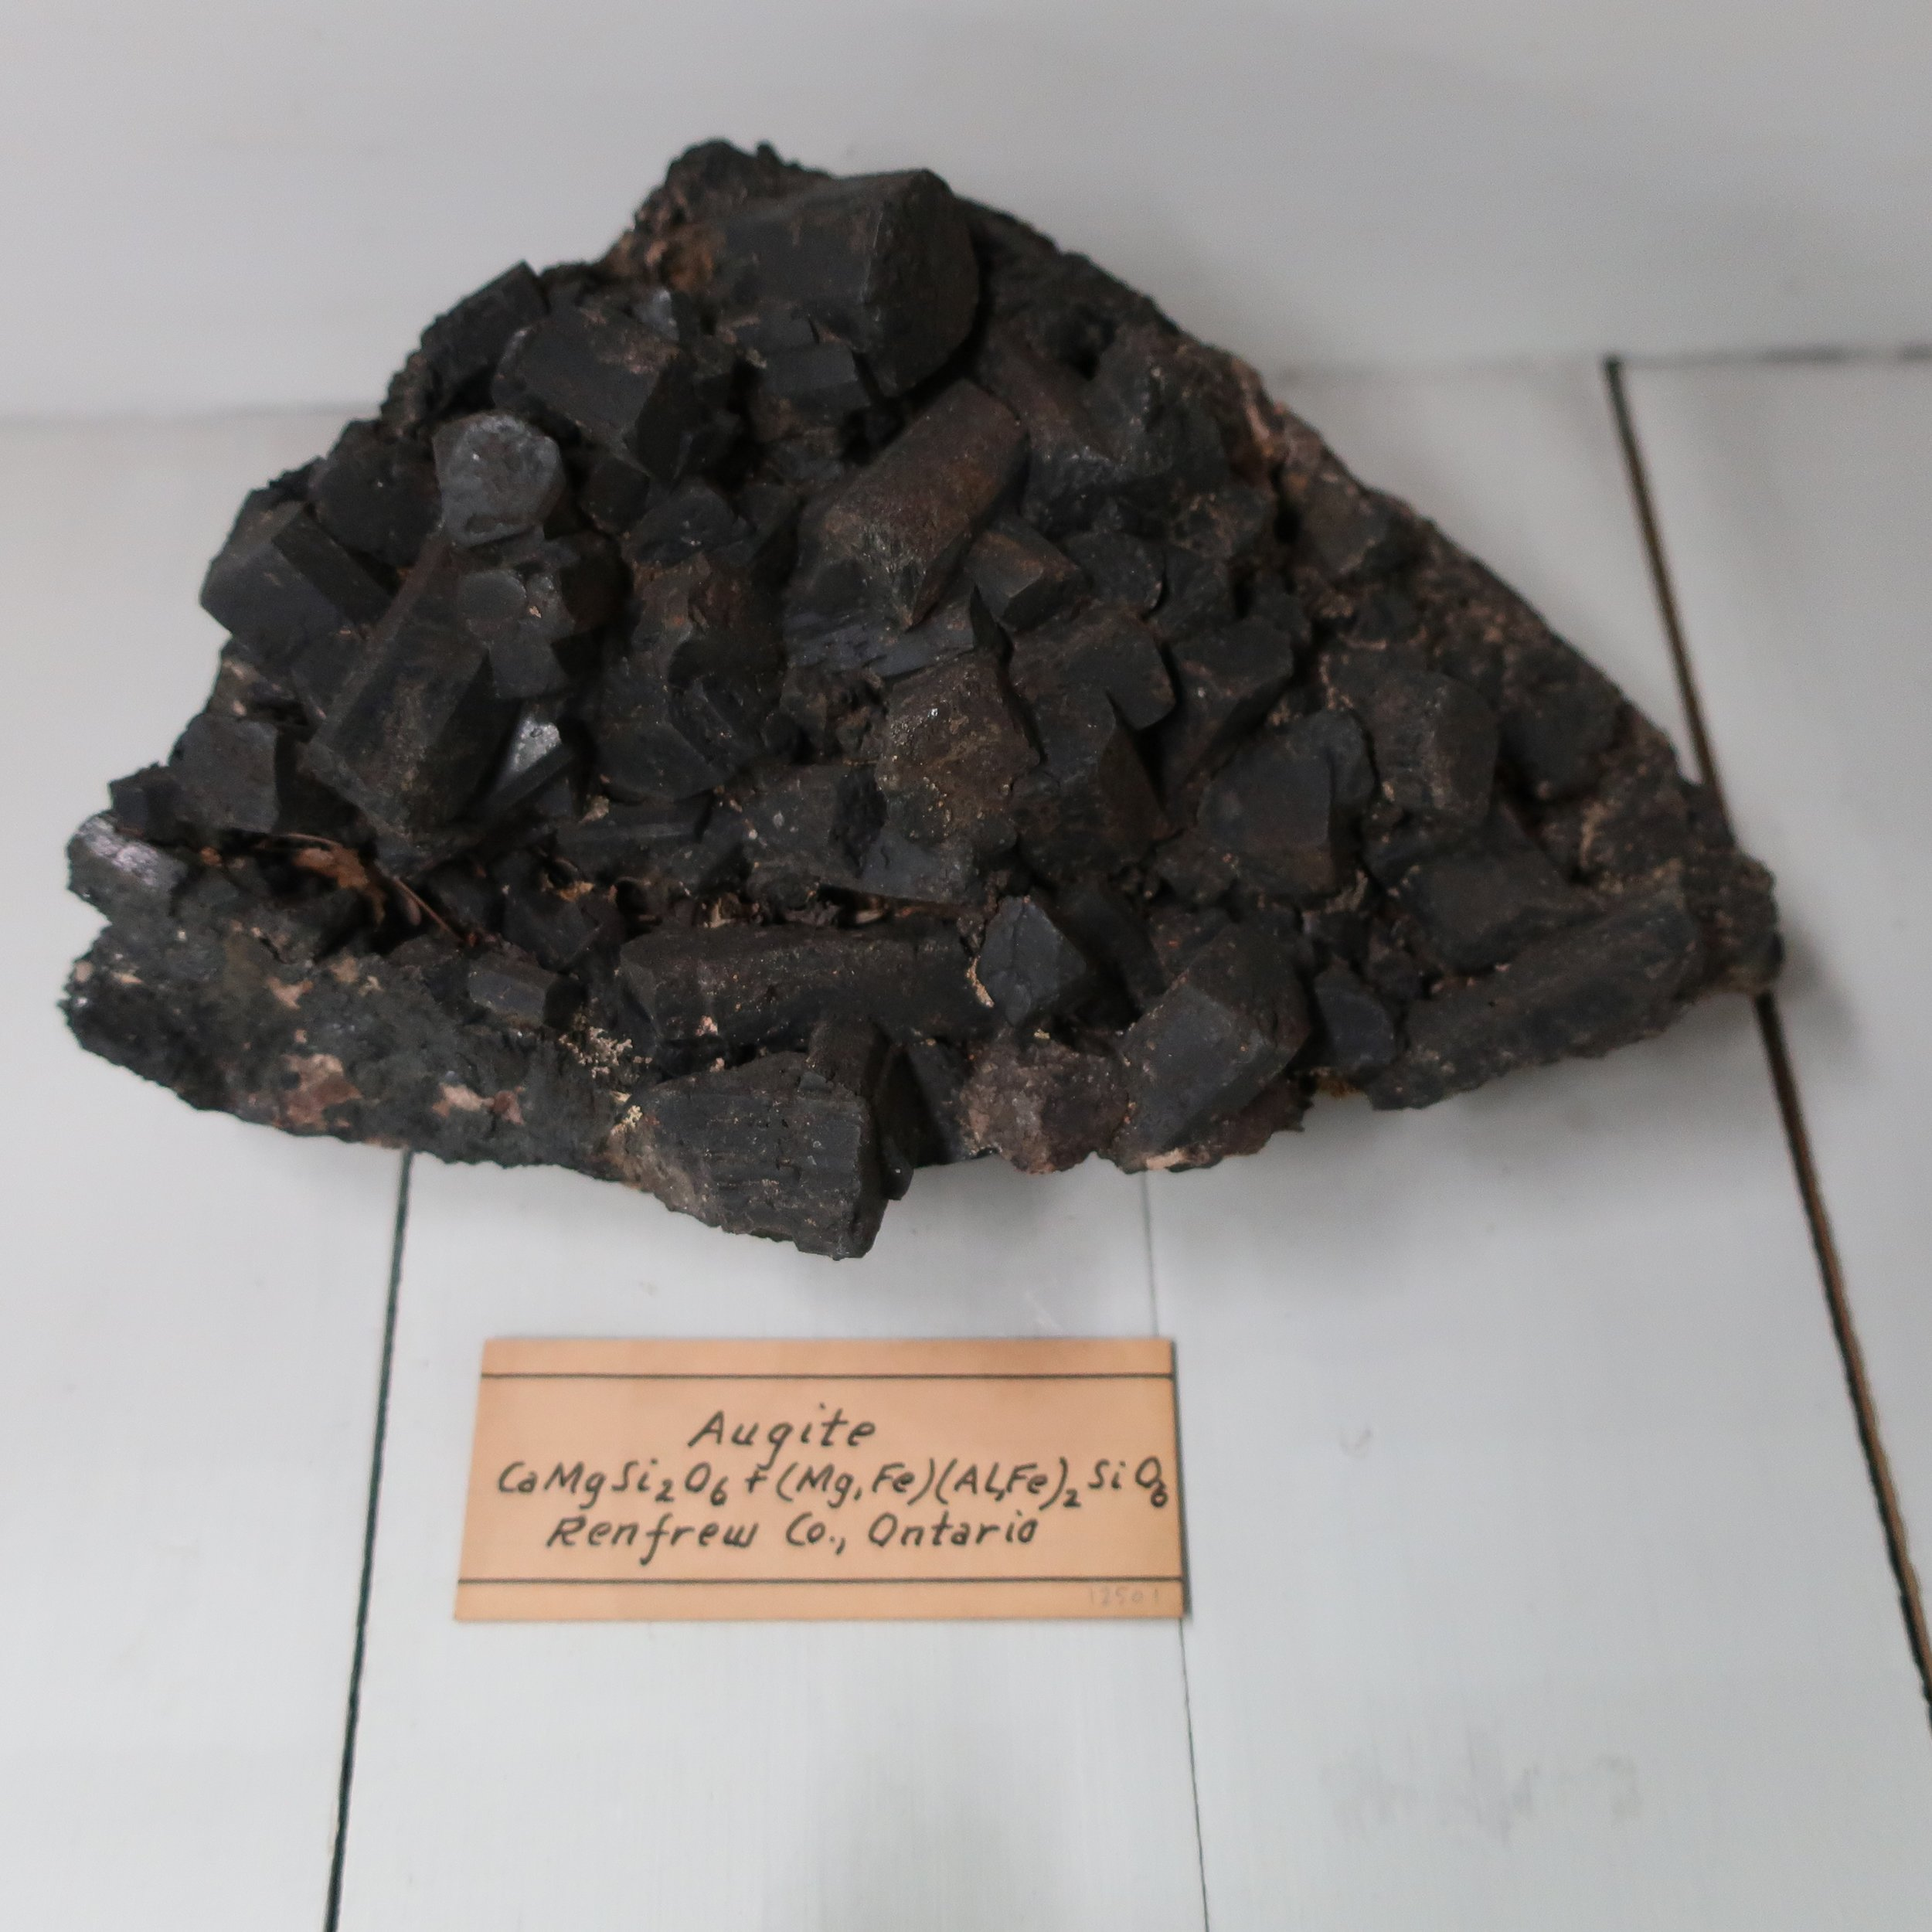 """Augite  is from the Greek meaning splendour, in allusion to the brilliancy of its crystals. It contains Silica 53. Lime 22. Iron 17. Magnesia 5. It is therefore a bisilicate of Lime, magnesia & Iron. Dr Thompson has seperated the white from the dark varieties, and discribed it as a distinct species, but as all the characters are common to both, it does not seem absolutely necessary that we should maintain the distinction. Augite occurs crystallized, also in grains, and amorphous, Its colour is white, green brown & sometimes black, with a vitrious or resinous lustre, and opake. Several varieties of Augite have been obtained artificially, by means of fusion. All varieties of this mineral seem to owe their peculiarities to the Isomorpous nature of Iron, and some of the other substances that enter into its composition, and replace each other without producing any change, in the crystaline form of the species. Augite is a common volcanic production. The debris of Monté Rossi on Aetna, I found large quantities of crystals of Augite. In the volcanic regeons of Vesuvius Stromboli and Bourbon, I found the same thing, it is said to occur in the same way in Avergne, and Tenneriffe. The crystals found in basalt, are generally larger than those found in lava, Remarkably beautiful crystals of augite have been found at Bytown upper Canada, the crystals sometimes an inch in diamiter, and 2 inches long are disseminated through calcarious Spar."""